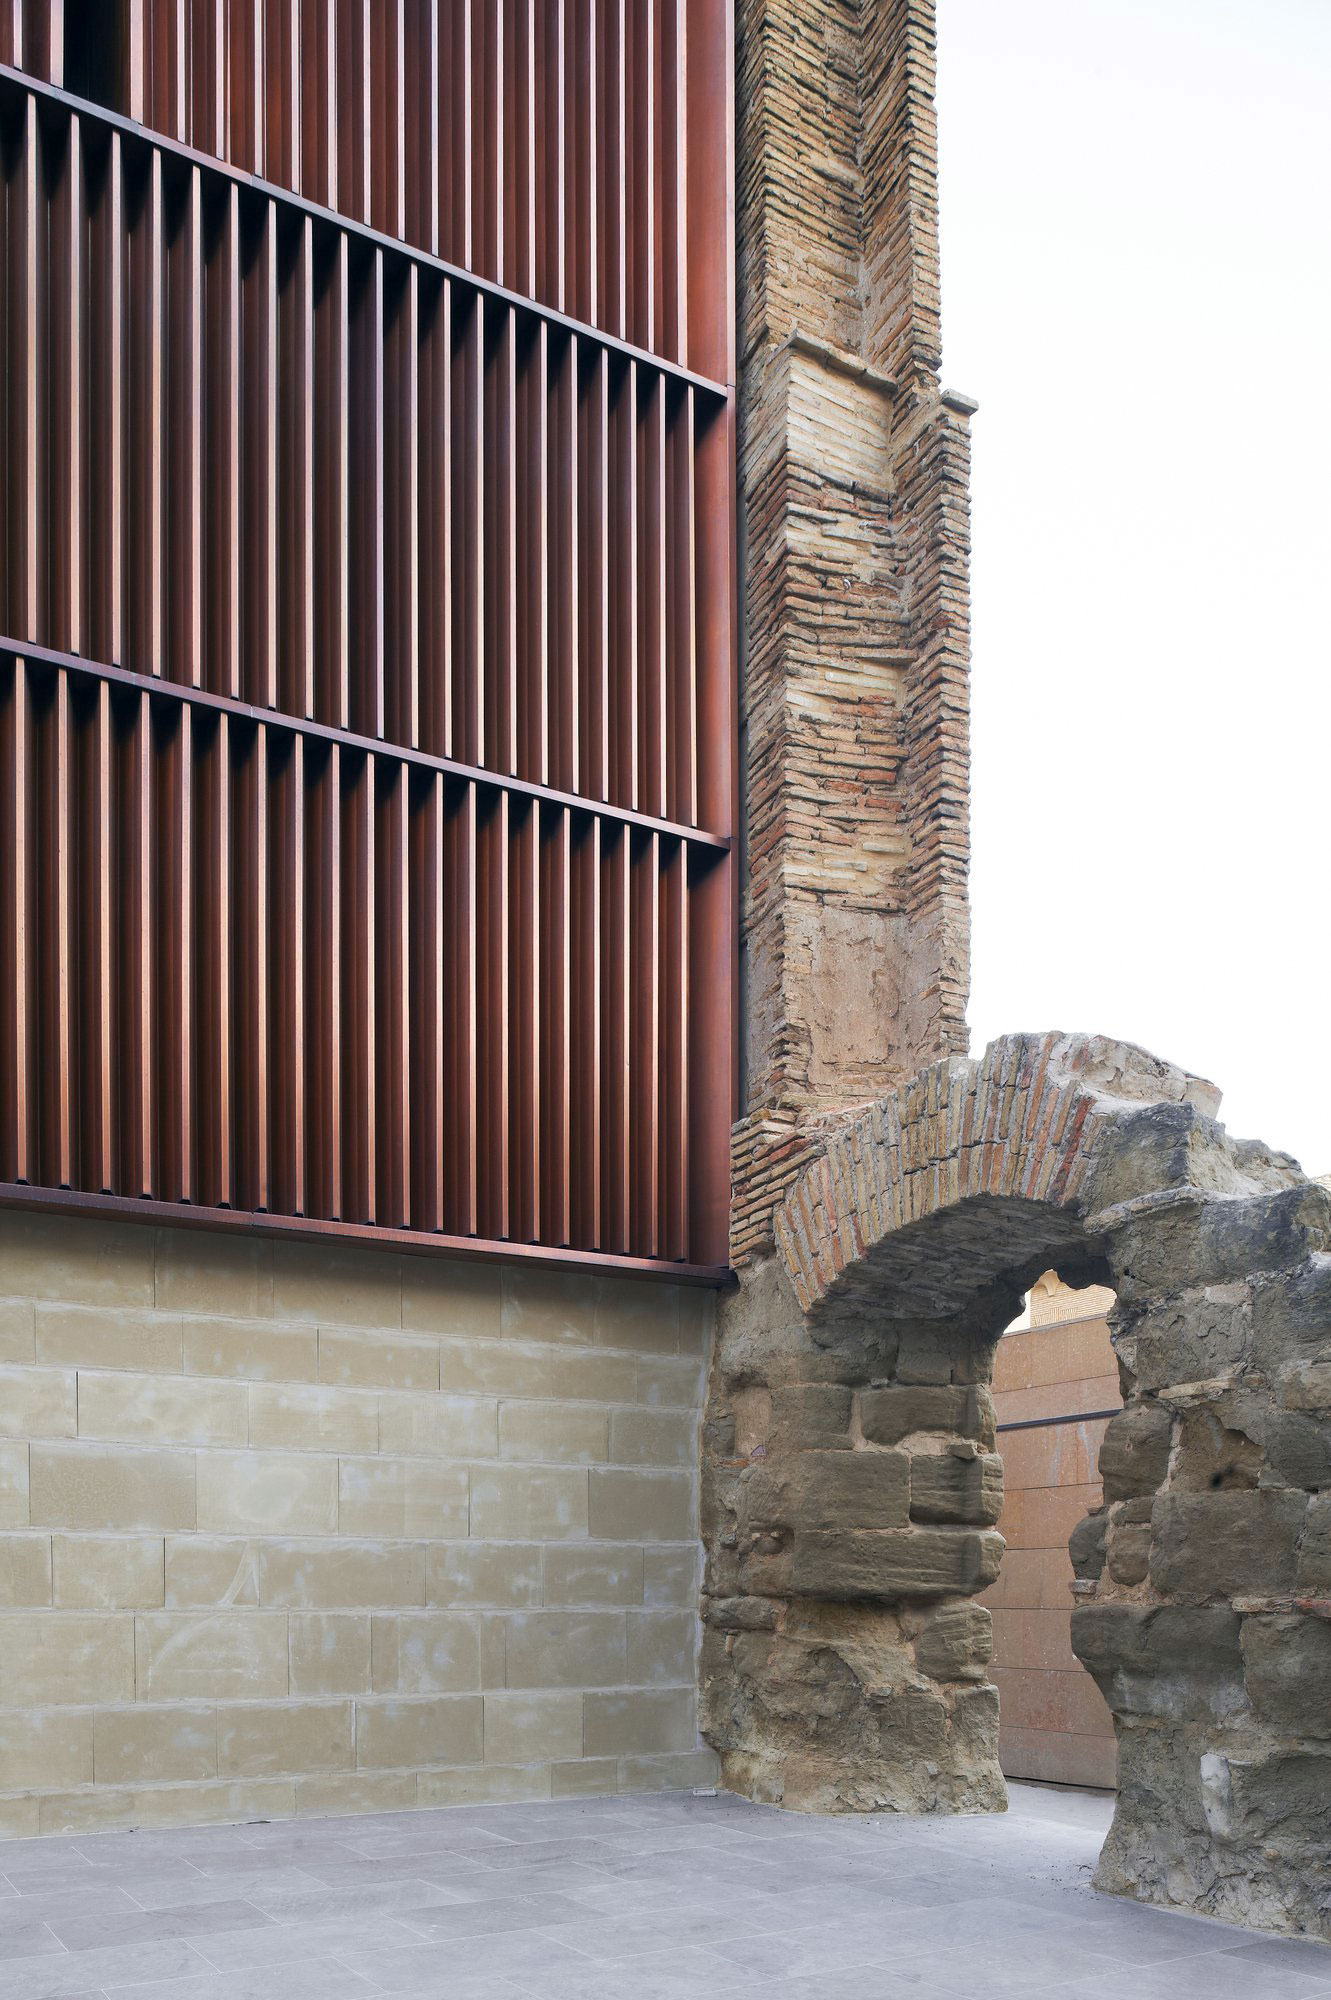 Refurbishment of the West Tower in Huesca City Hall by ACXT1 | Yellowtrace